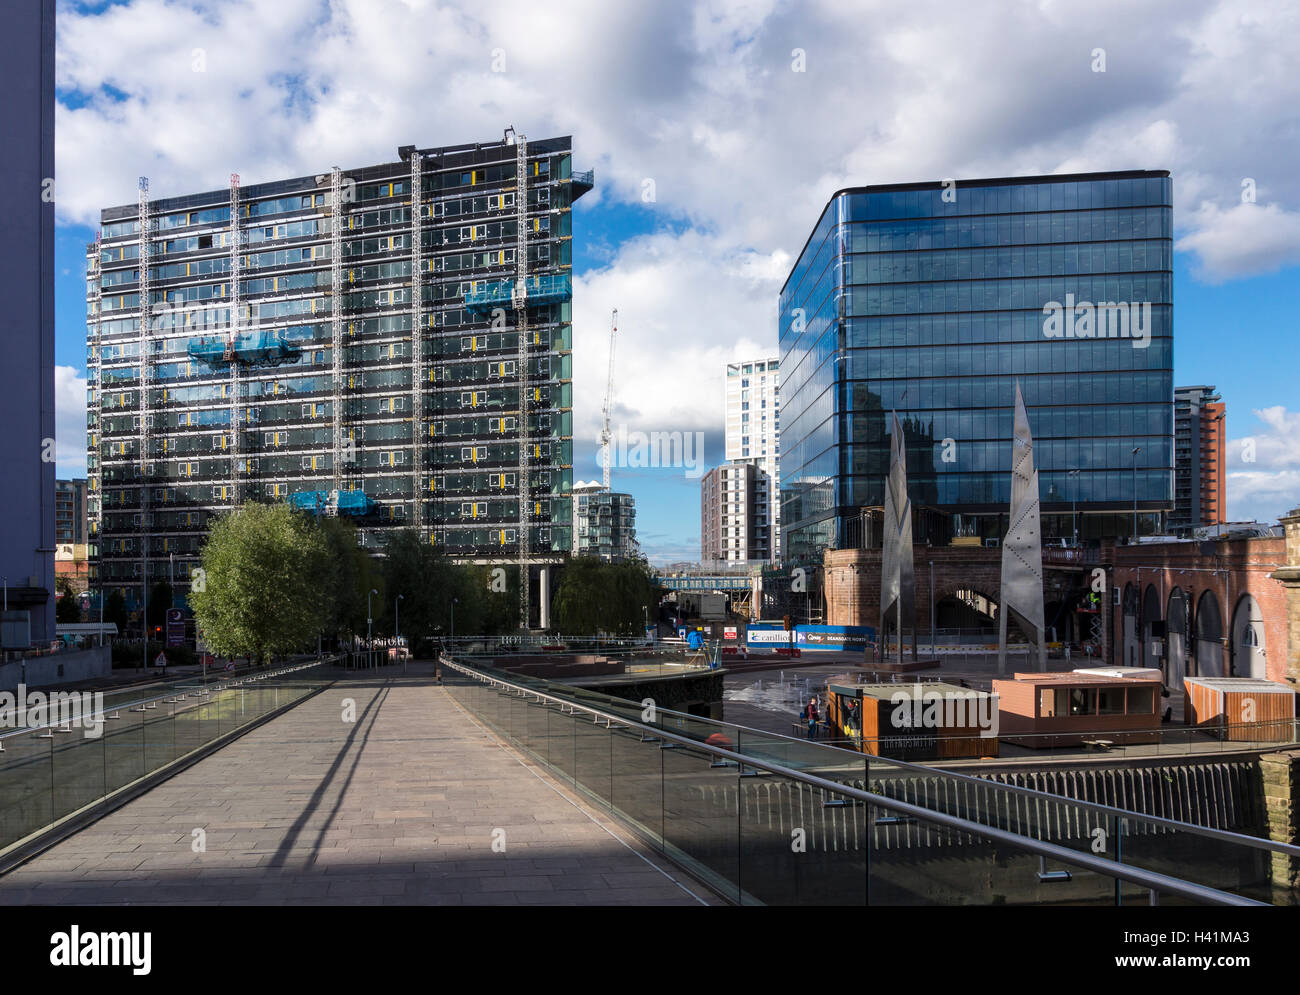 Citysuites and Embankment Developments in Manchester - Stock Image